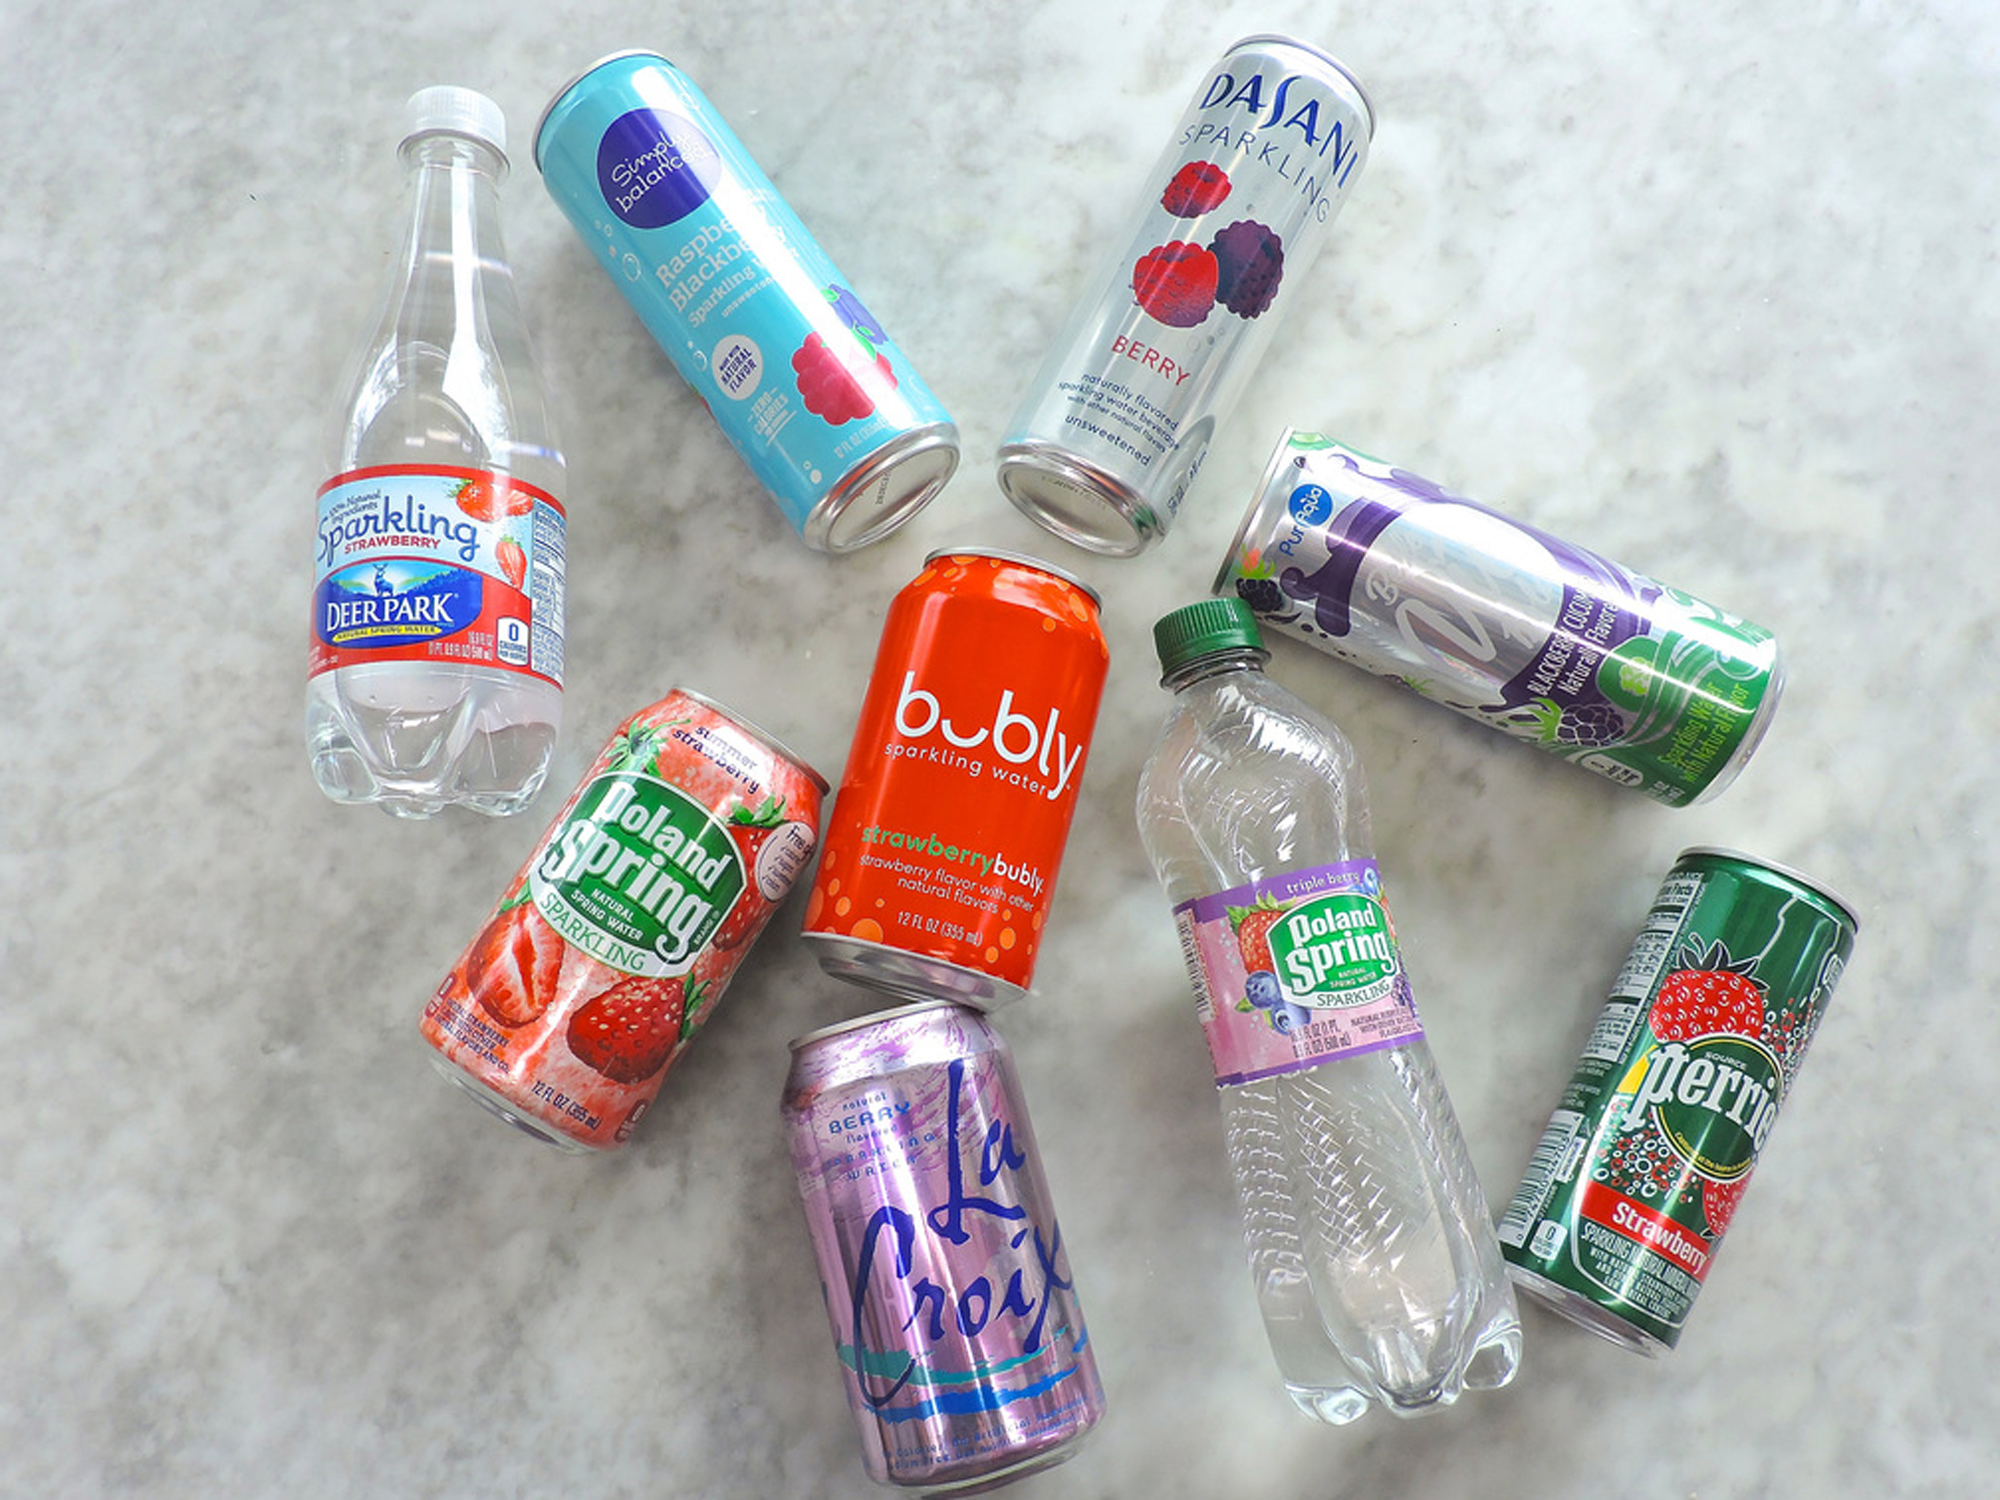 We Tried 9 of the Latest Sparkling Waters—And This One Was Our Favorite